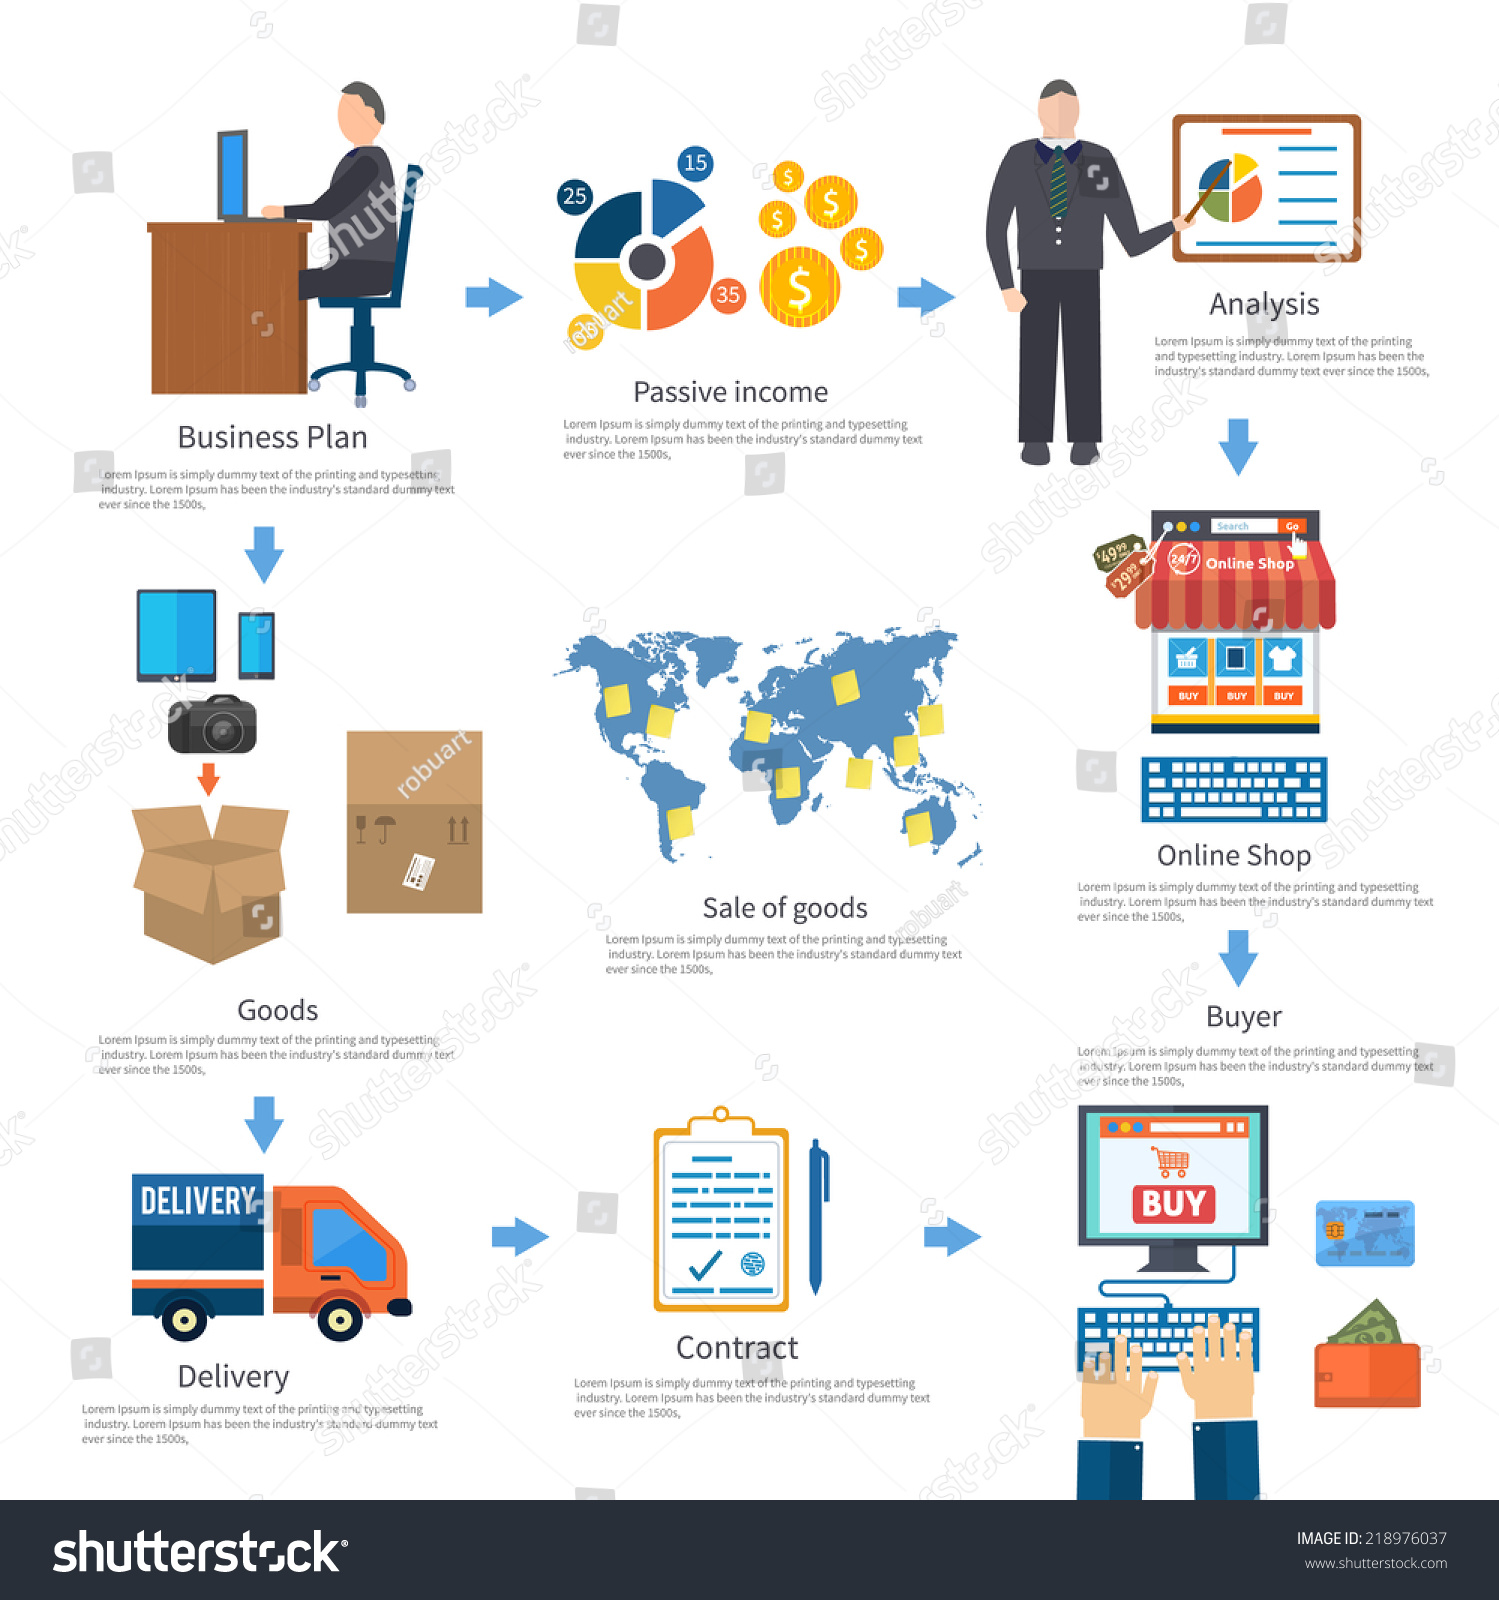 Analyze Internet Shopping Process Purchasing Delivery Stock Vector ...